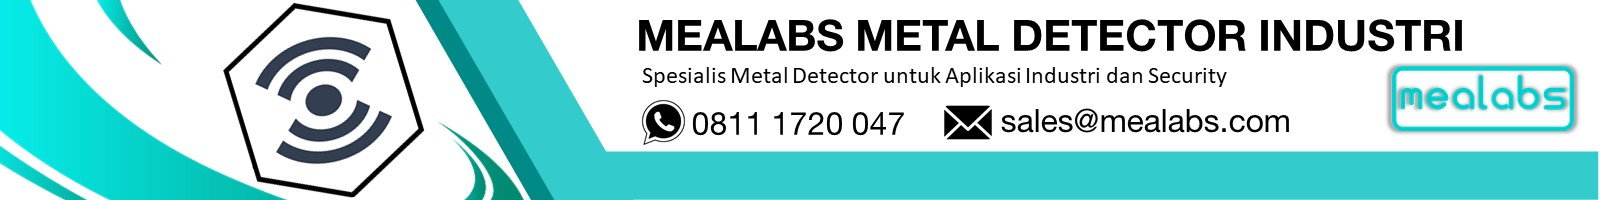 mealabs metal detector indonesia